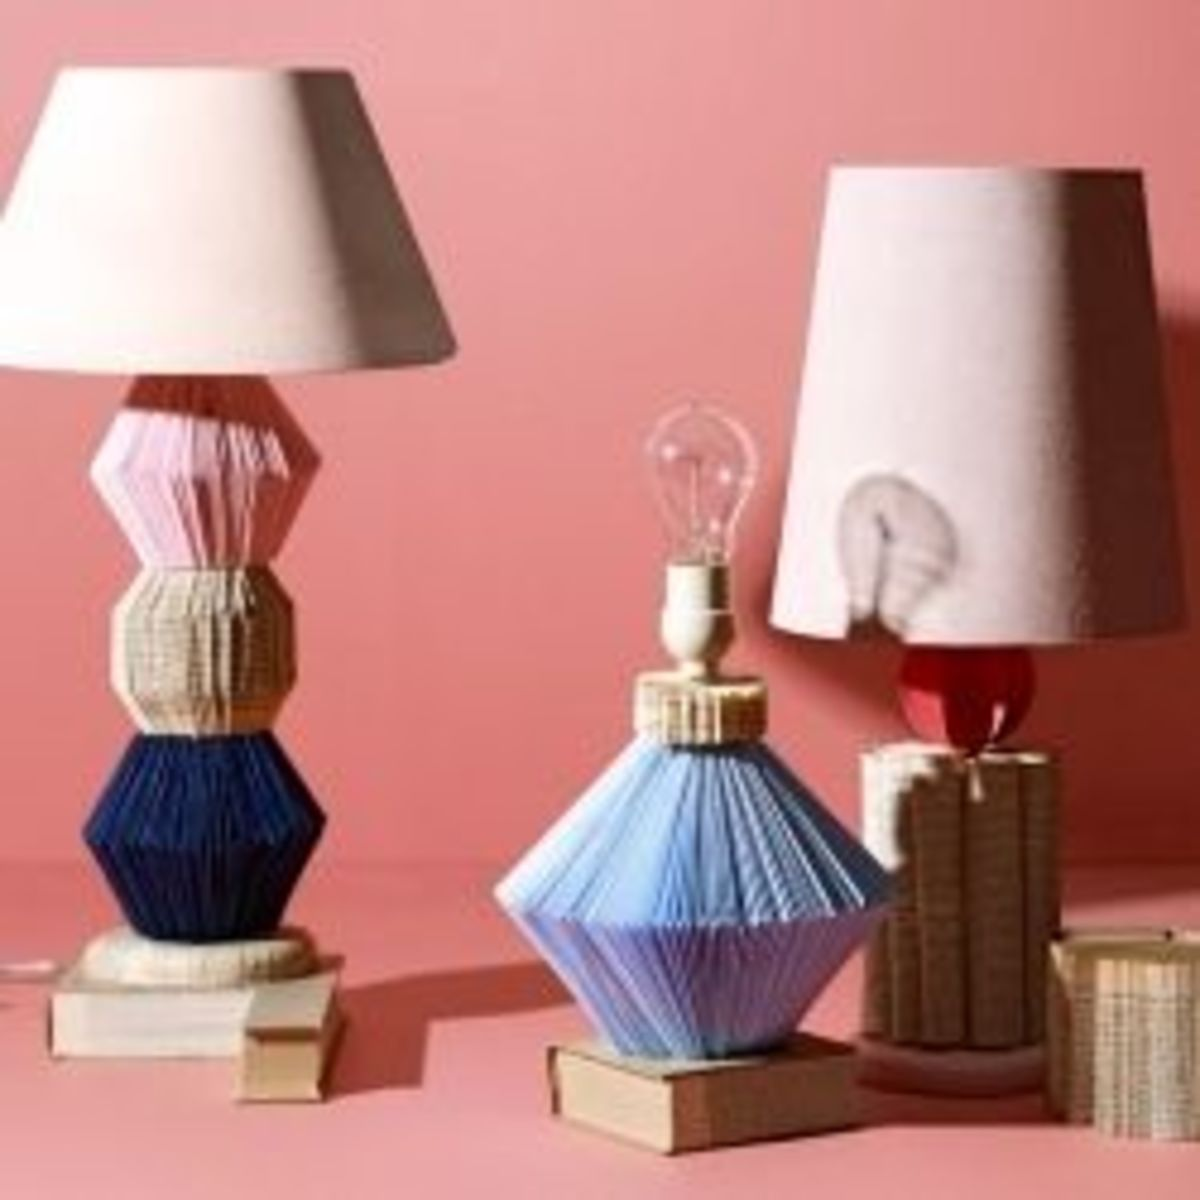 Literary Lamp made from recycled books- Image from ReadyMade.com